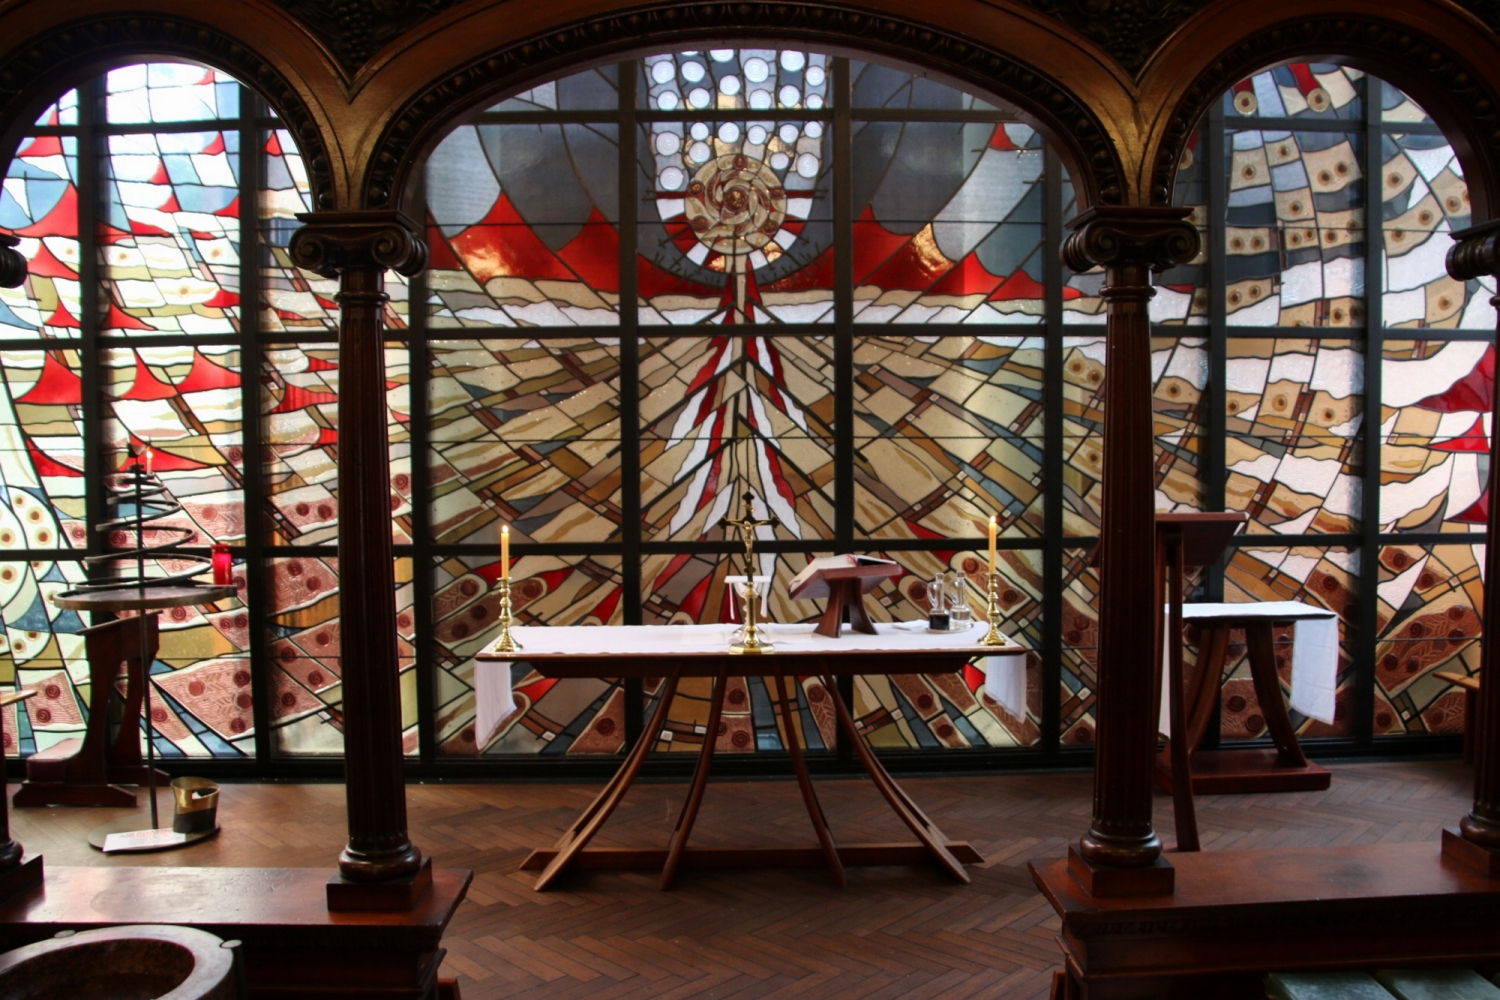 Backlit stained glass windows framed by arches.